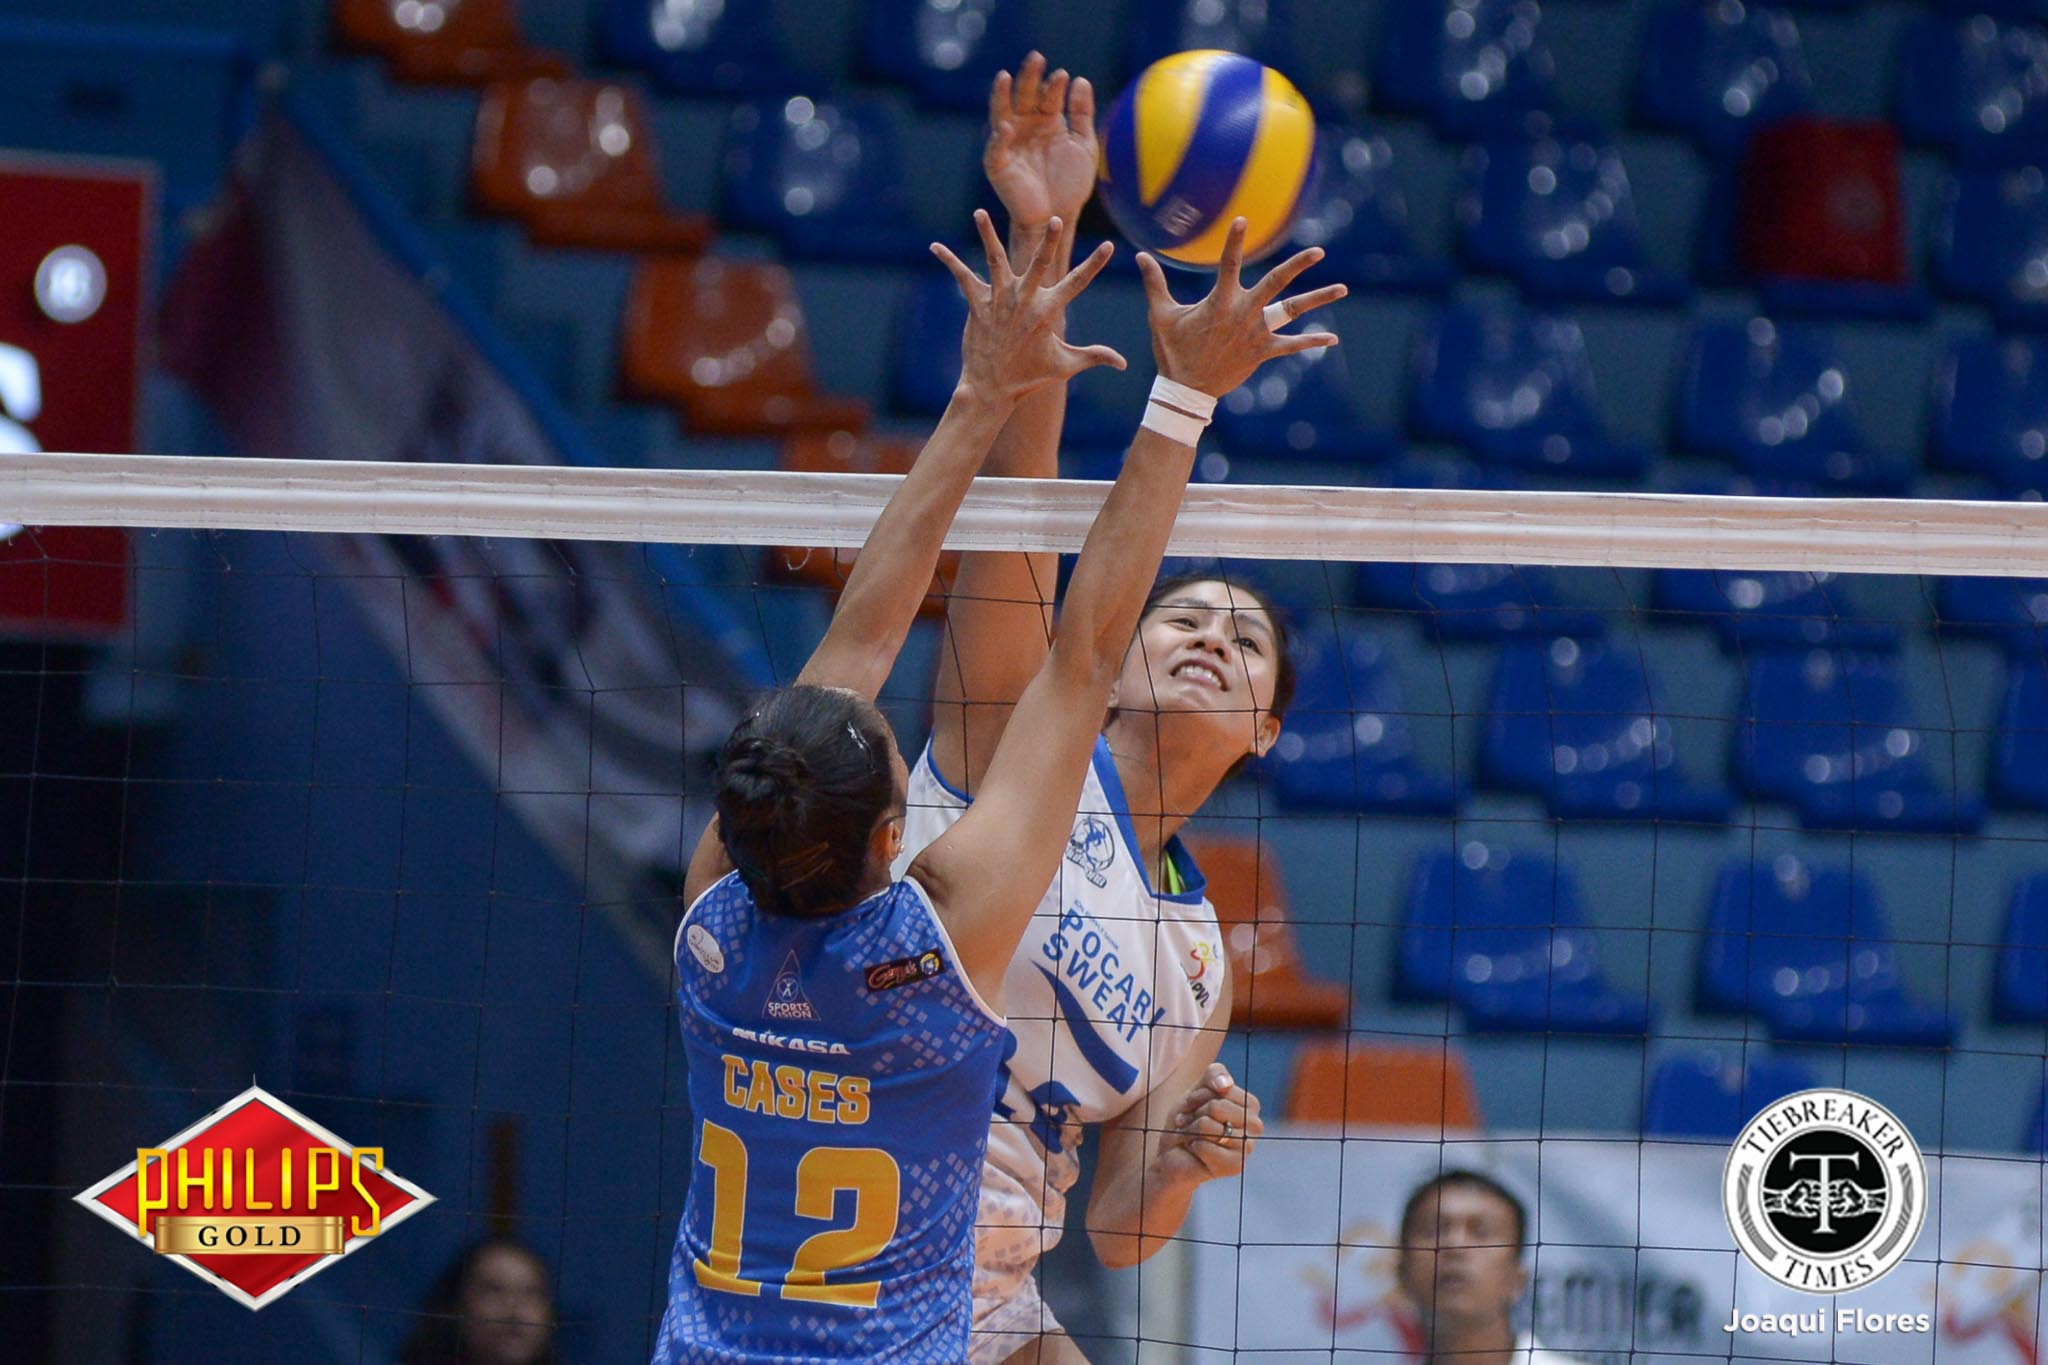 Philippine Sports News - Tiebreaker Times Pocari Sweat breaks Air Force's heart anew to advance to fourth straight Finals News PVL Volleyball  Rico De Guzman Pocari Sweat Lady Warriors Myla Pablo Melissa Gohing Jeanette Panaga Jasper Jimenez Heather Guino-o Gyzelle Sy Air Force Jet Spikers 2017 PVL Women's Open Conference 2017 PVL Season